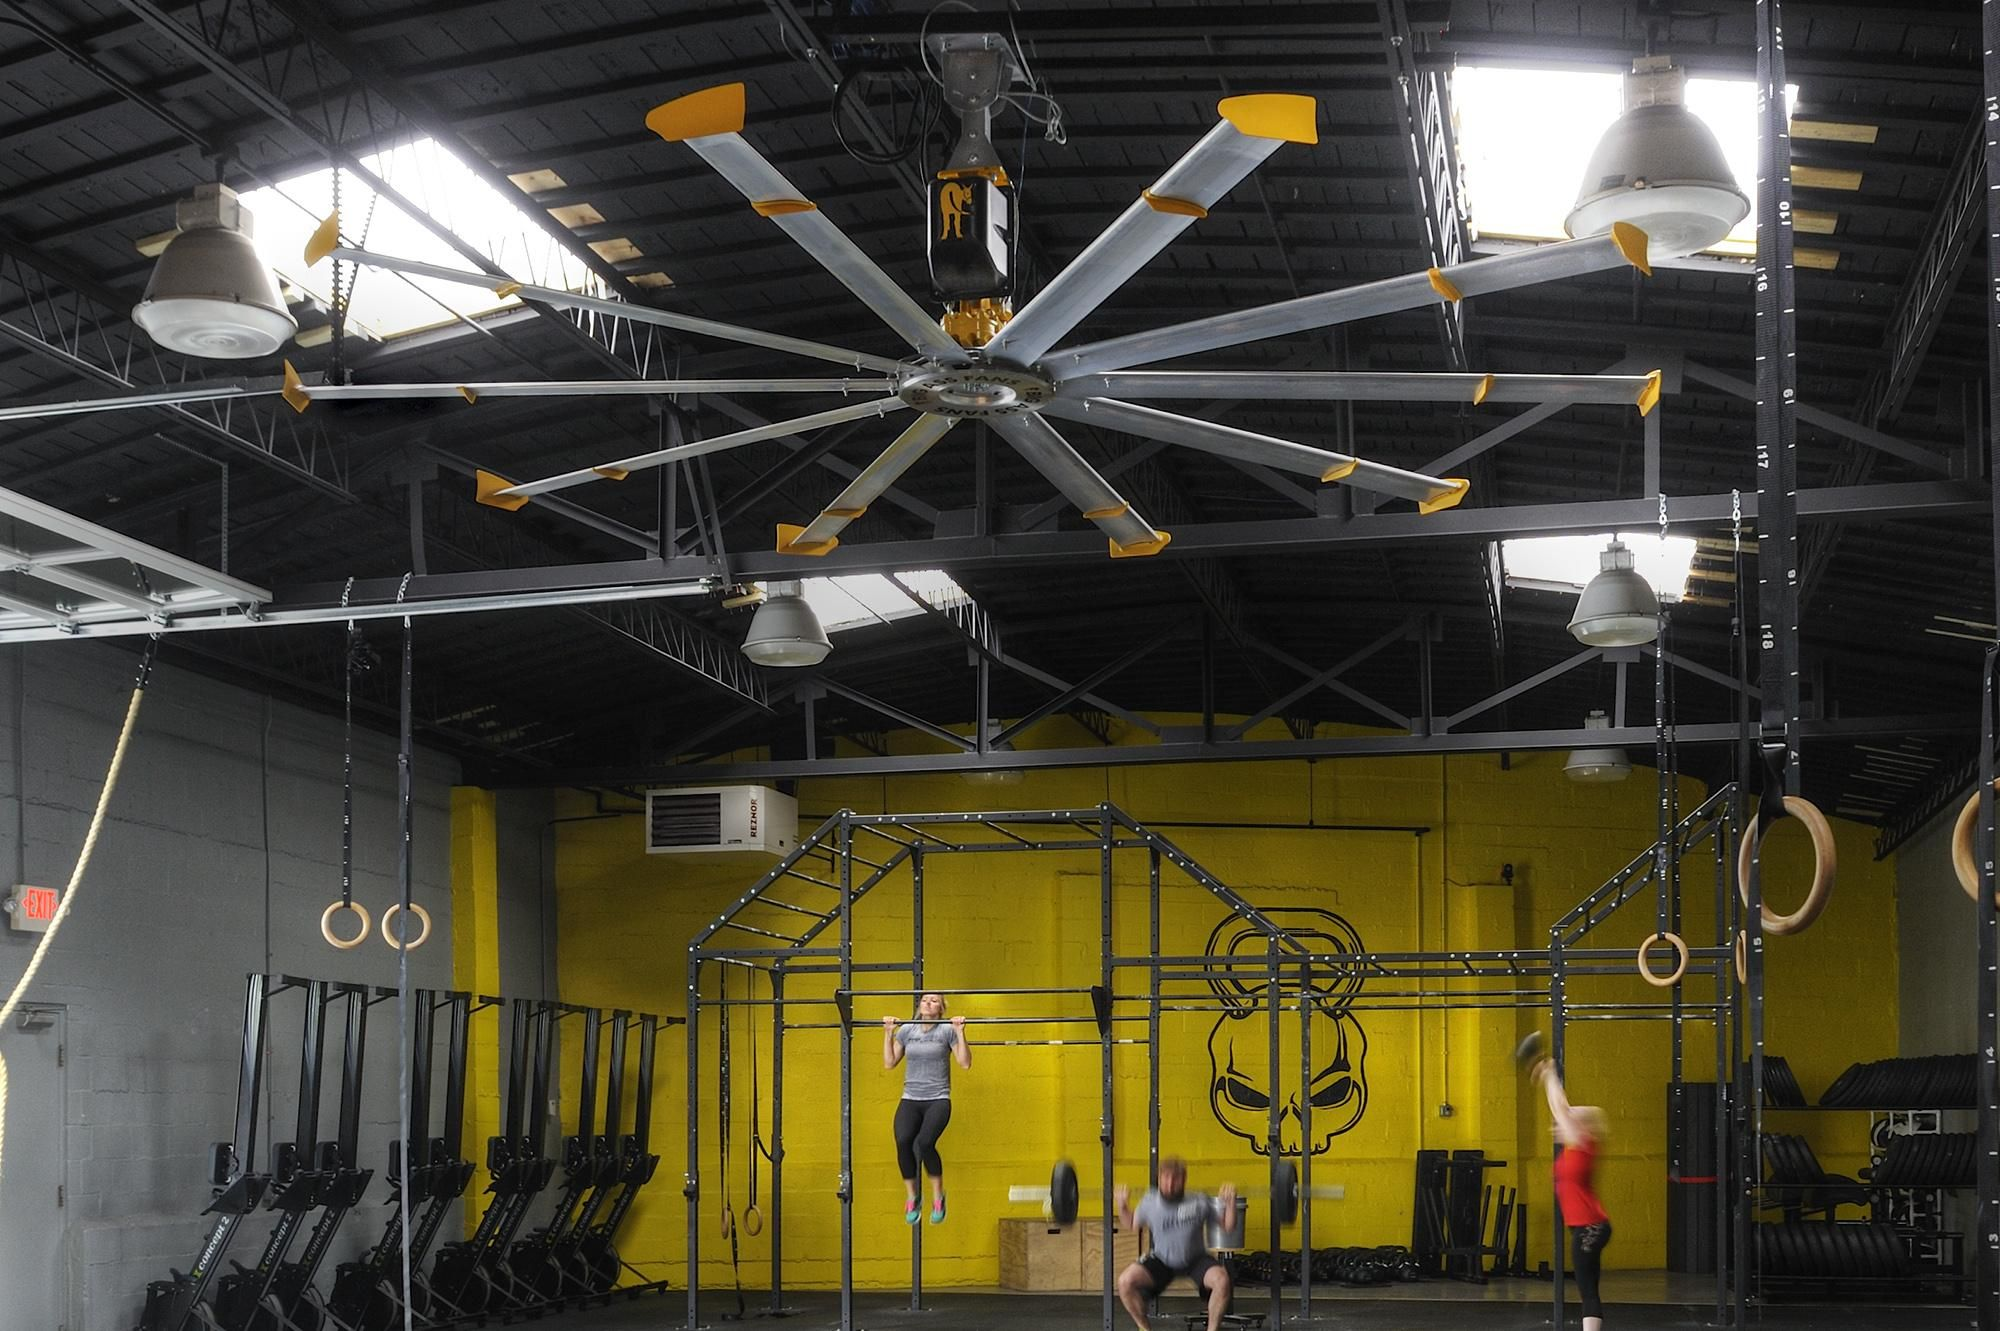 Gym ceiling fans are essentials if they